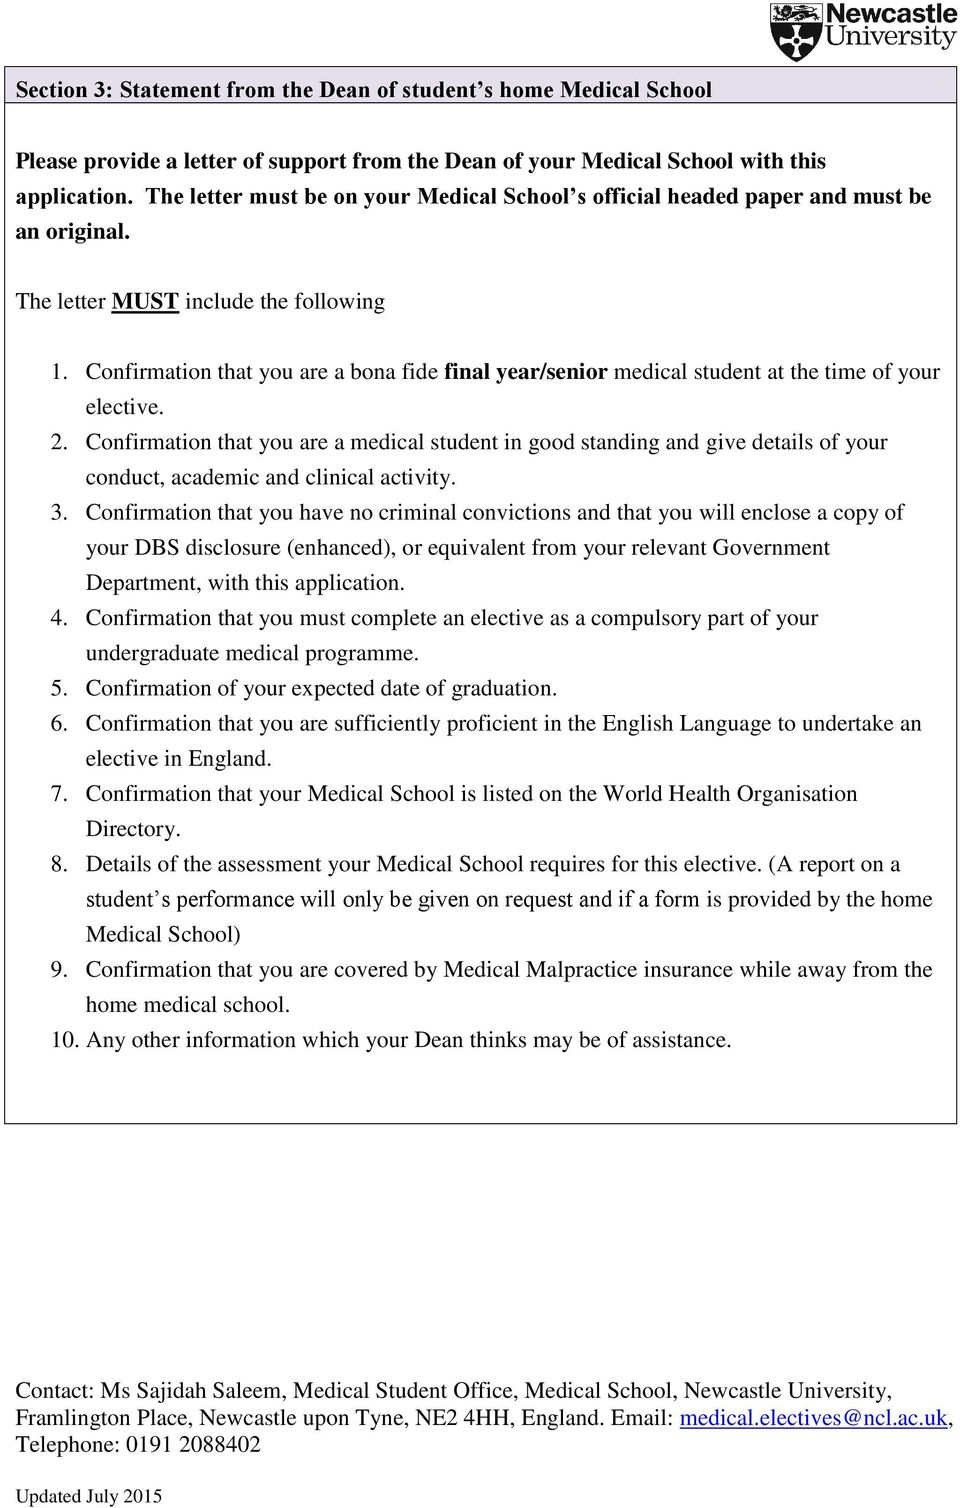 Incoming Medical Elective Application Form - PDF